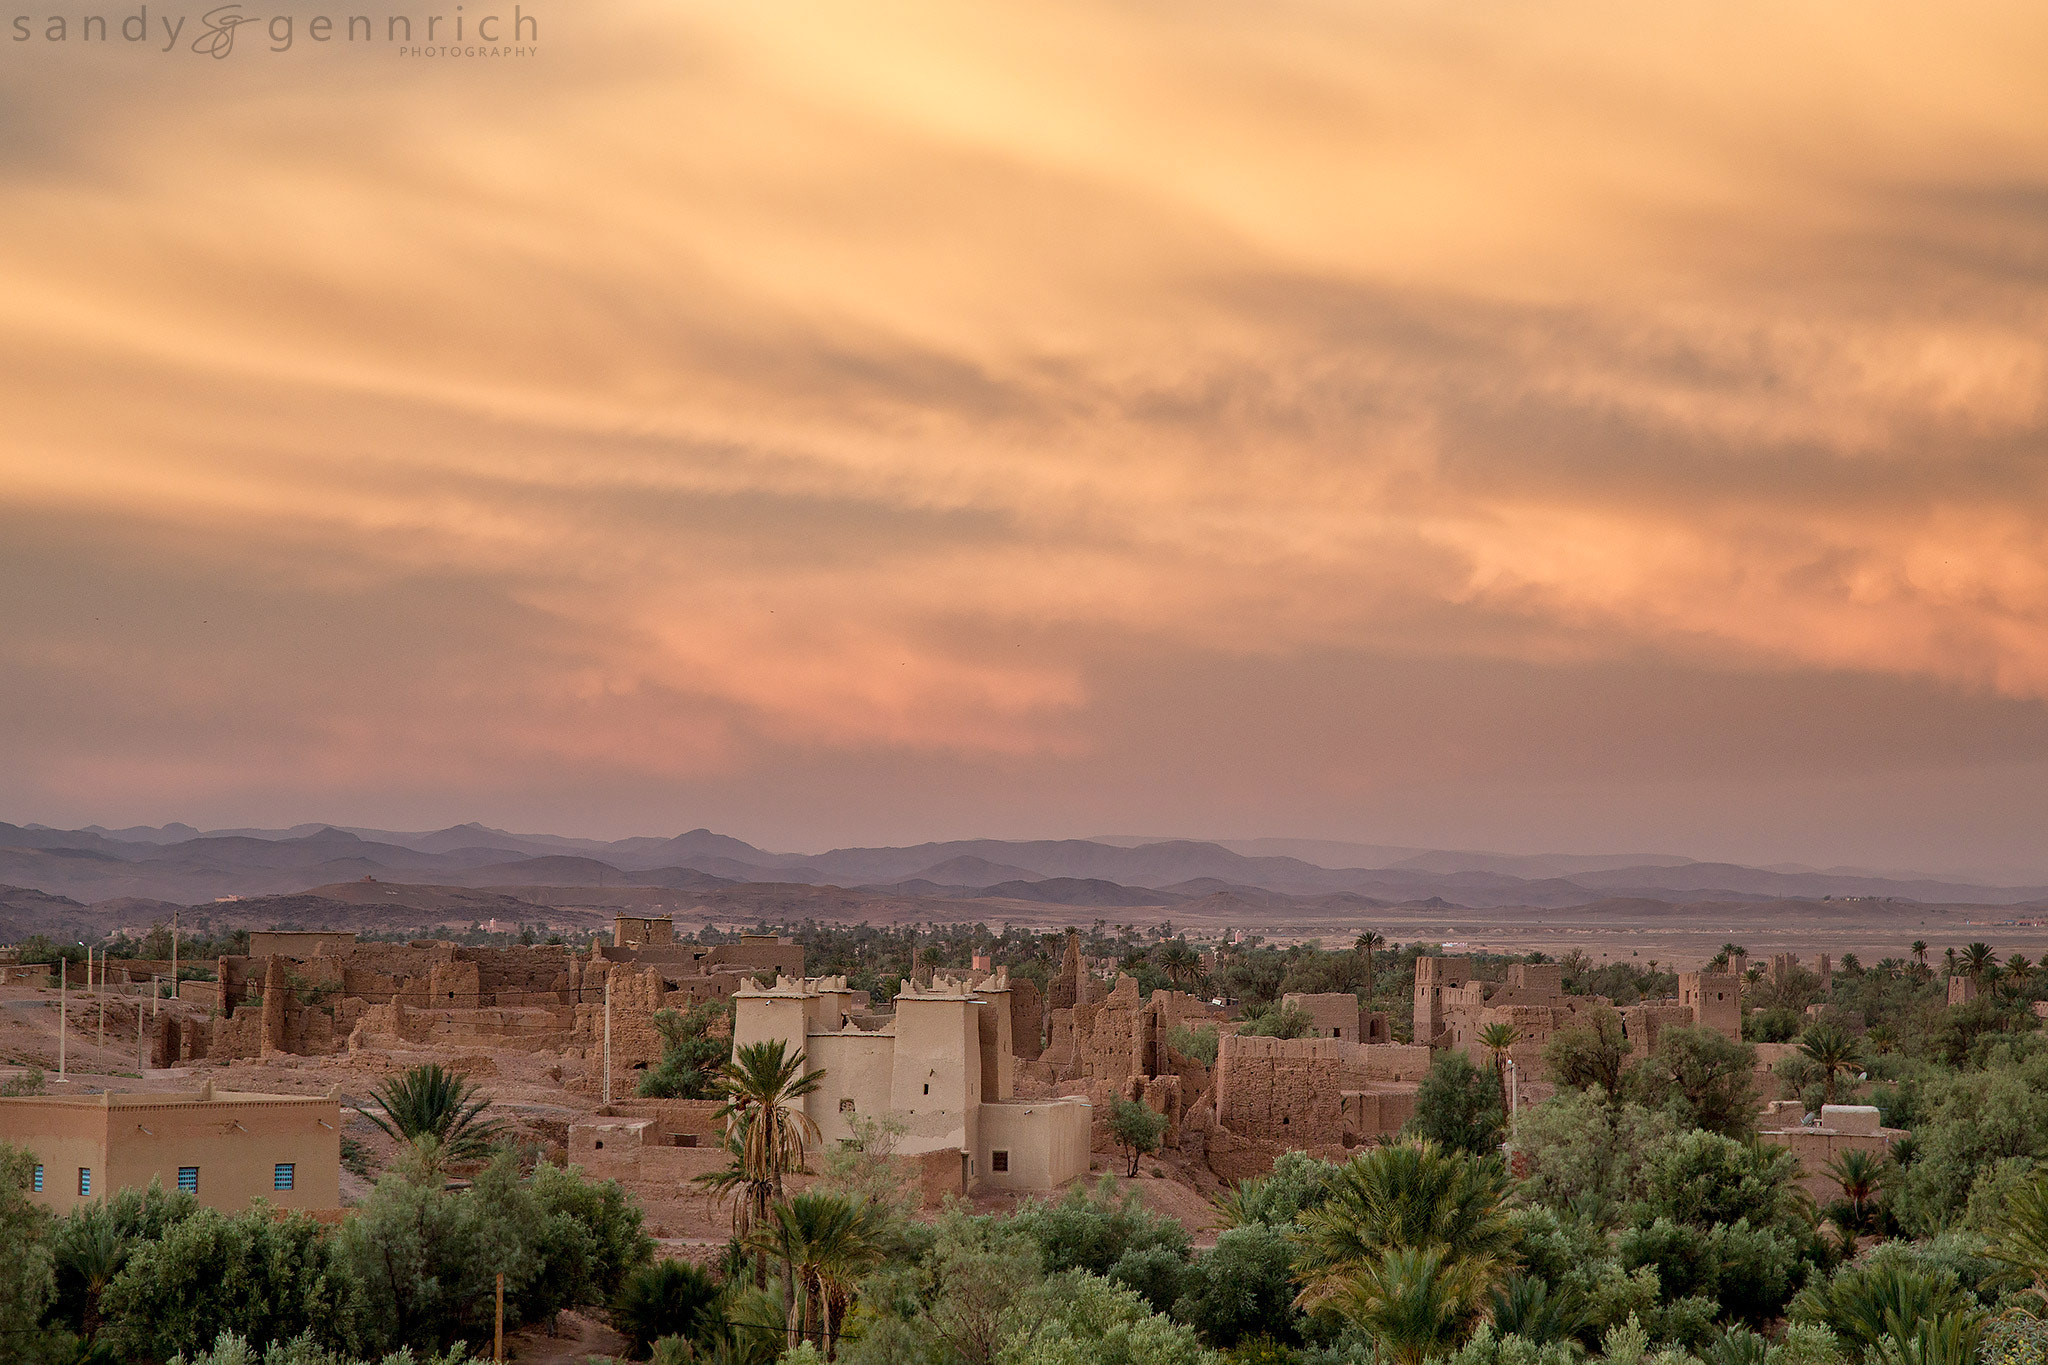 Photograph Land of Kasbahs - Skoura Oasis - Morocco by Sandy Gennrich on 500px